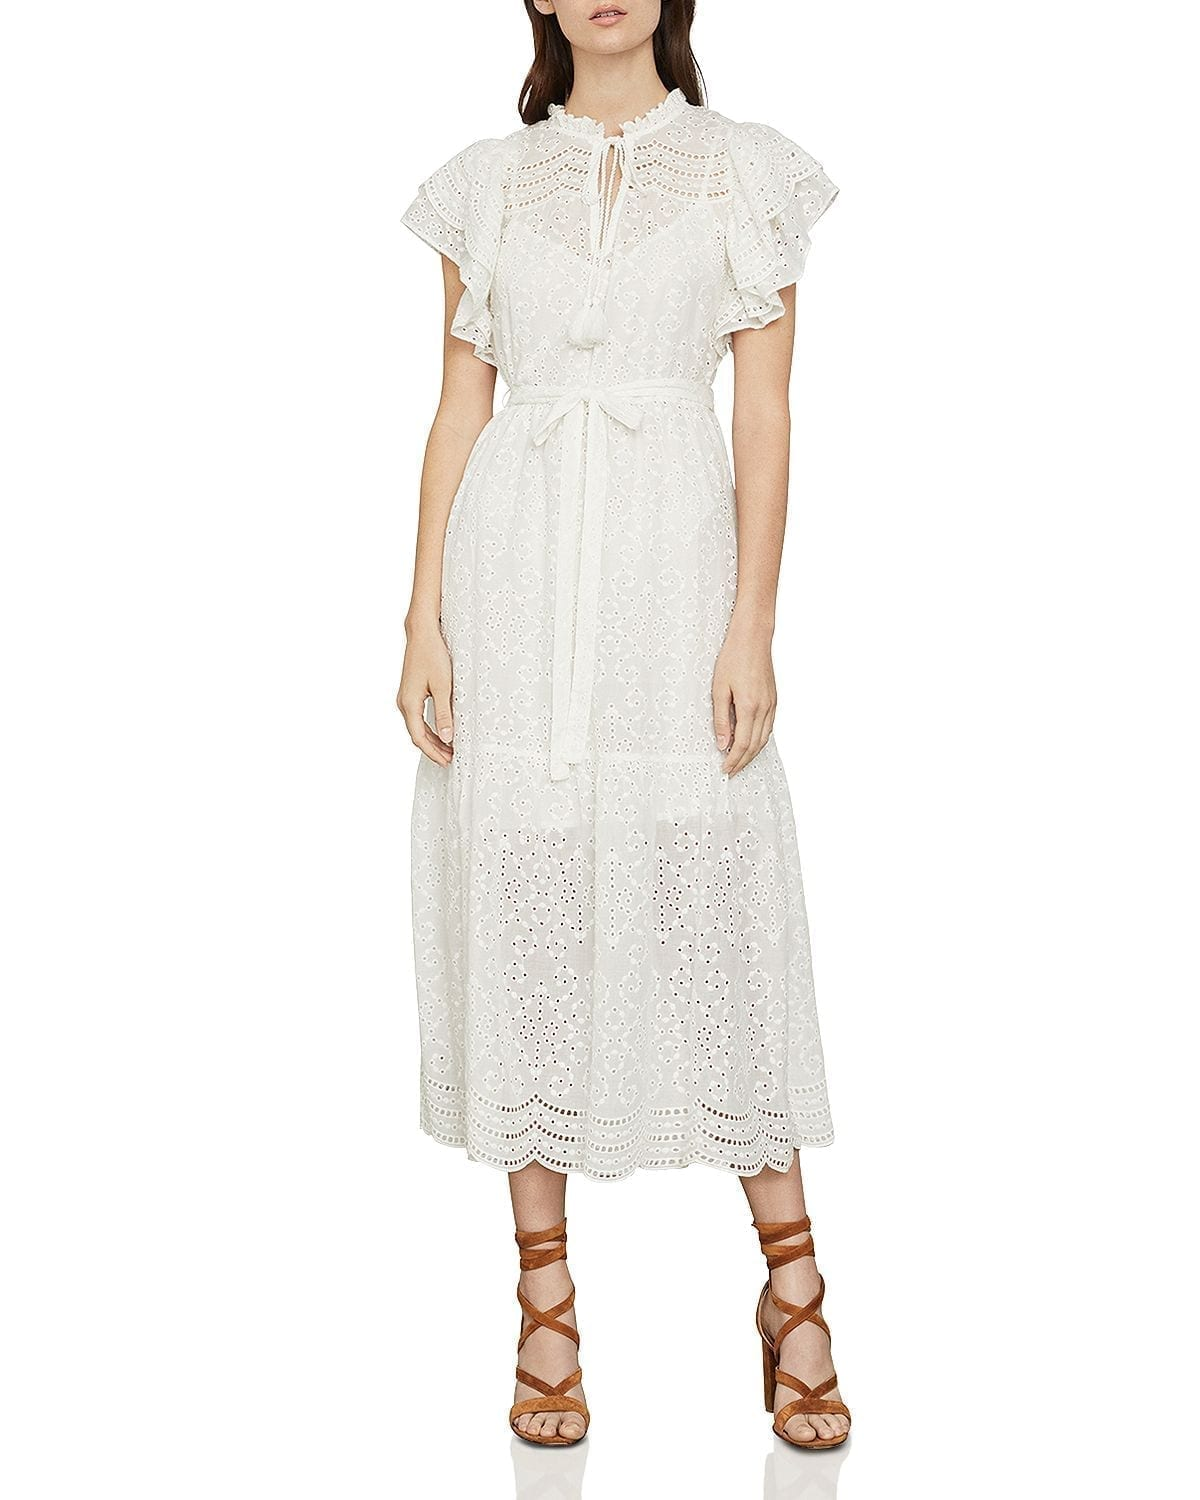 BCBGMAXAZRIA Eyelet Ruffled Cotton Midi Dress